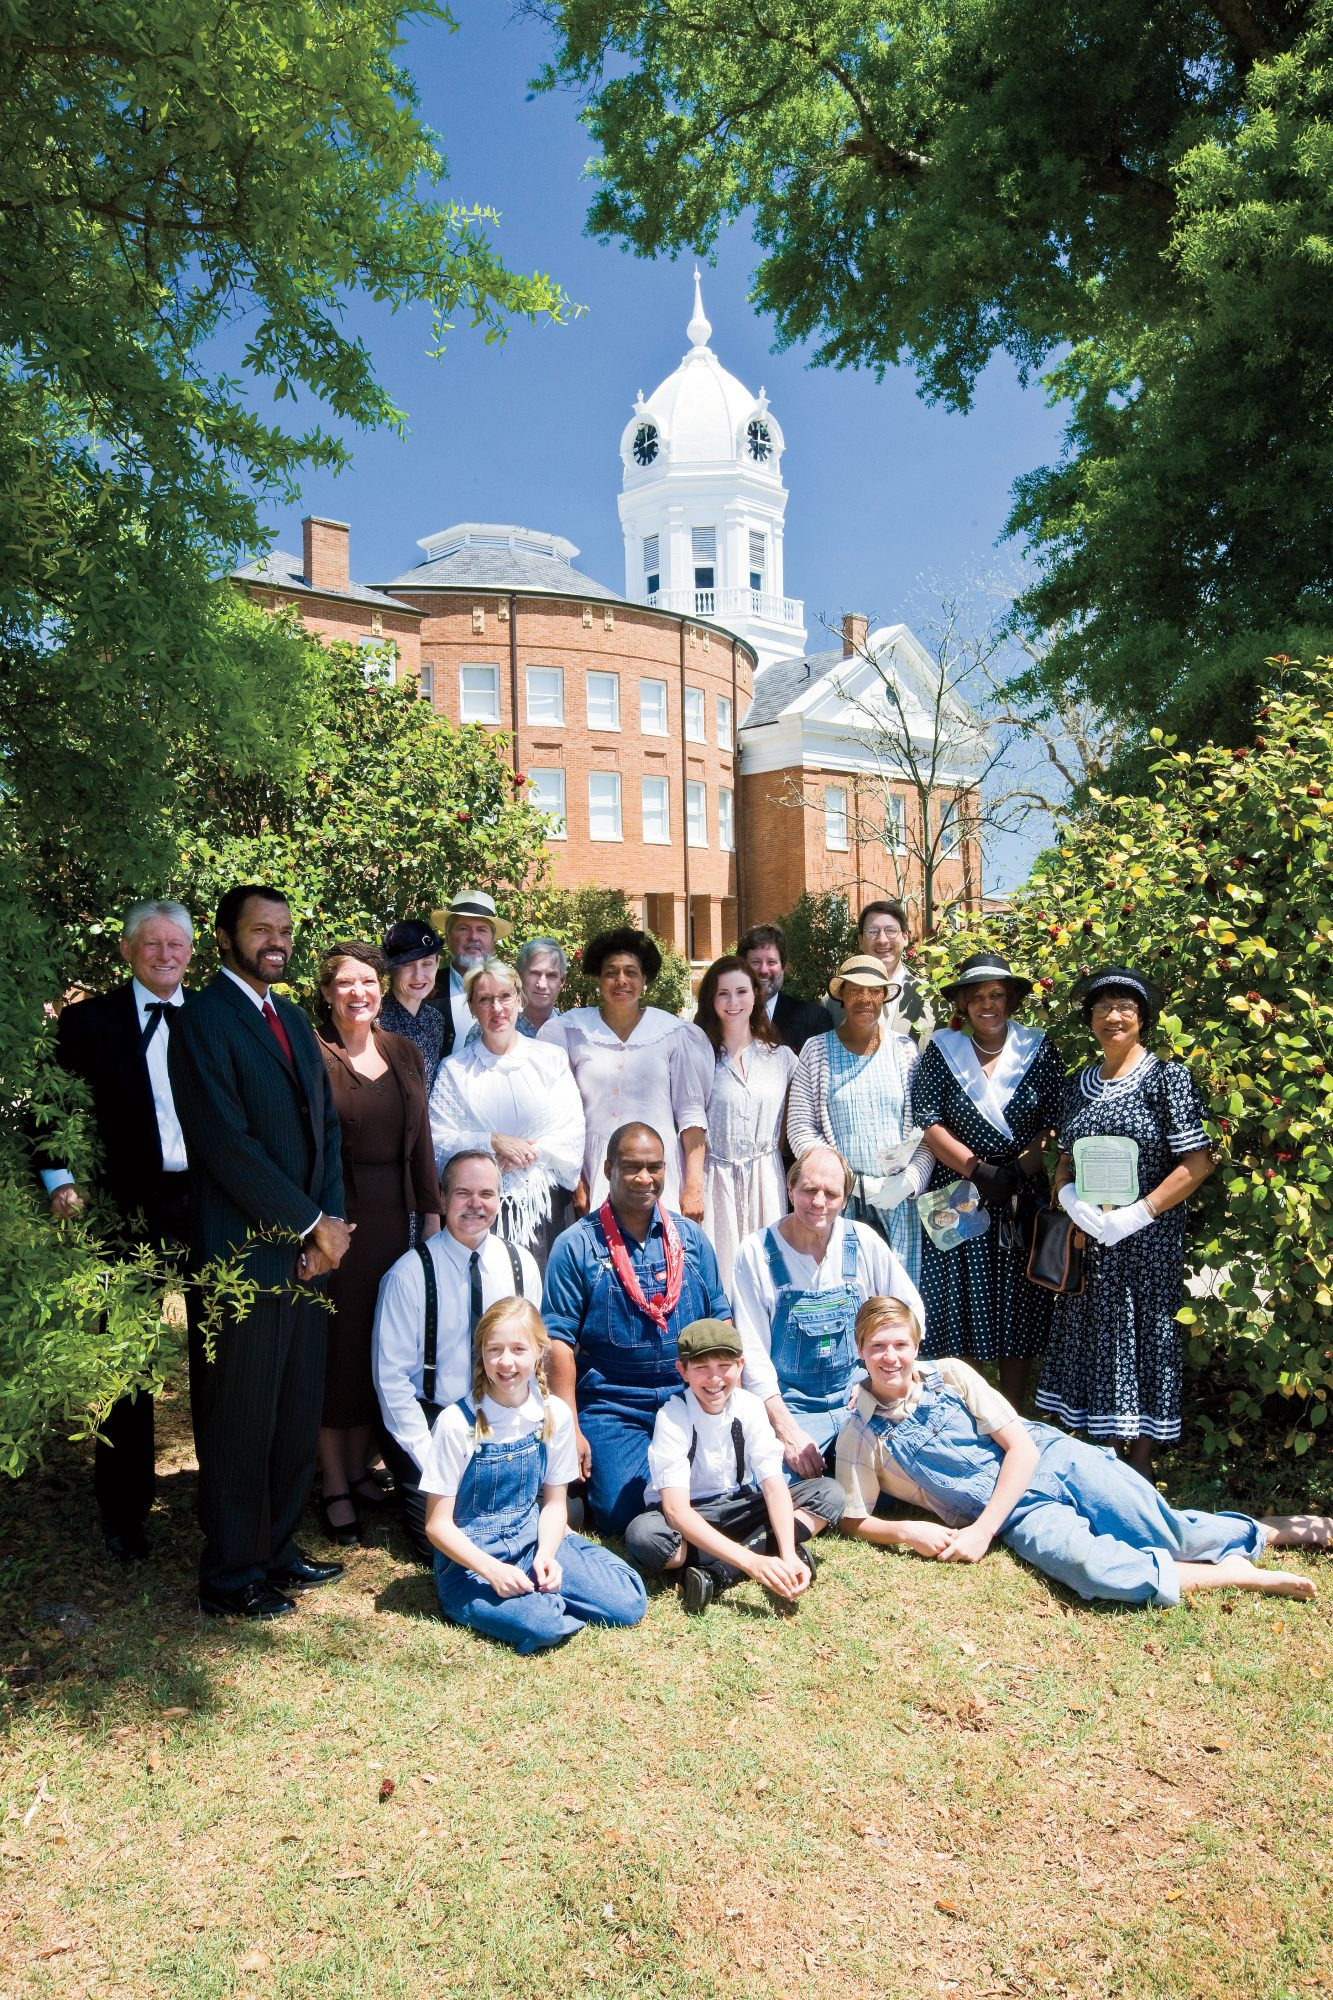 To Kill A Mockingbird Anniversary in Monroeville, AL